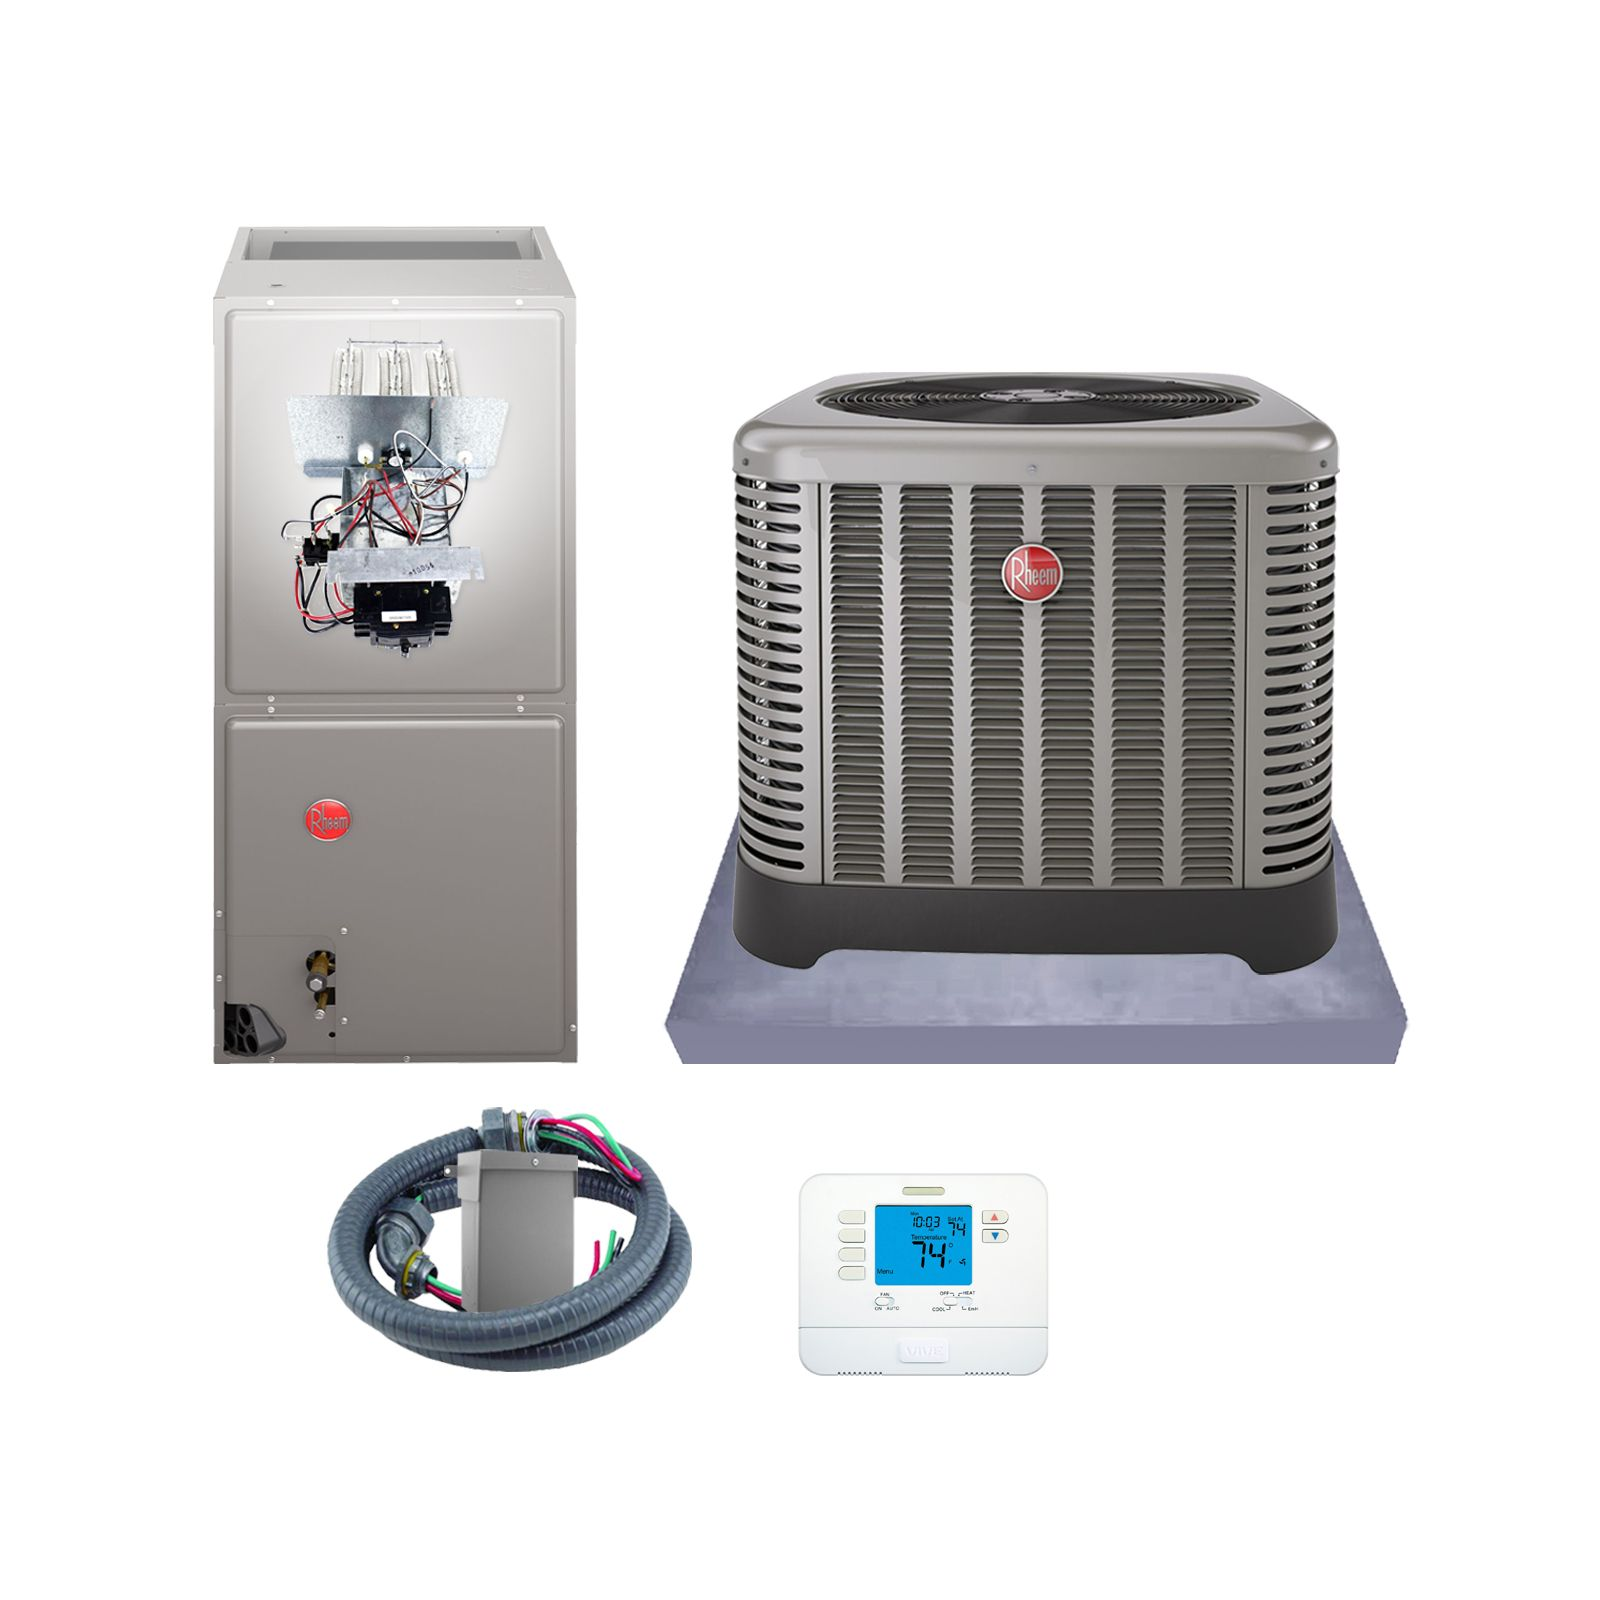 Rheem (AHRI 7512115) 3 Ton, 15 SEER/12.5 EER Classic Series, Heat Pump Split System and Install Kit